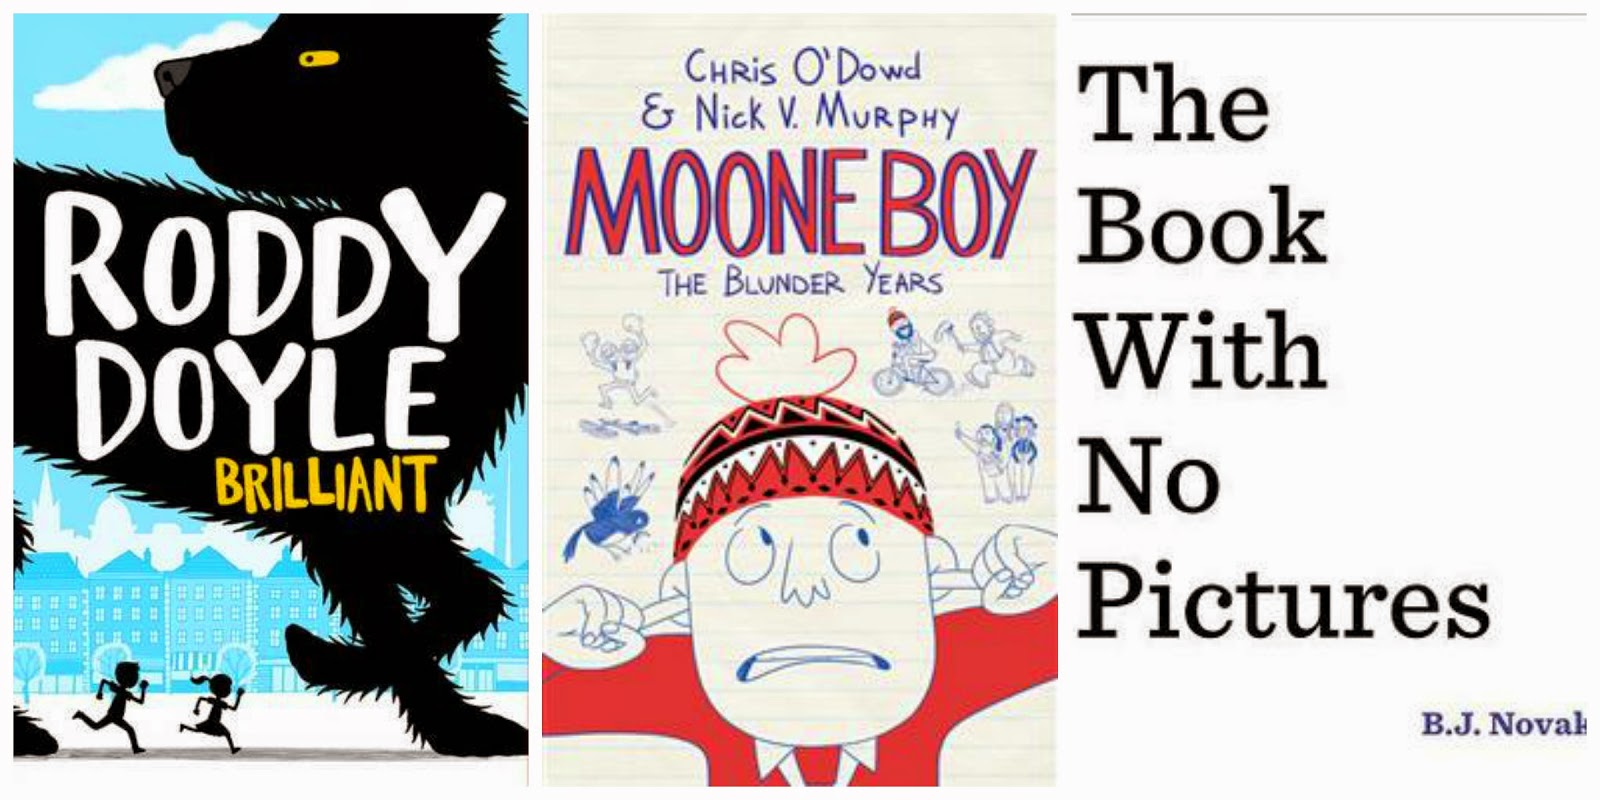 I Love The Sound Of Roddy Doyle's Brilliant, In Which Two Kids Overhear  That Their Uncle Has A